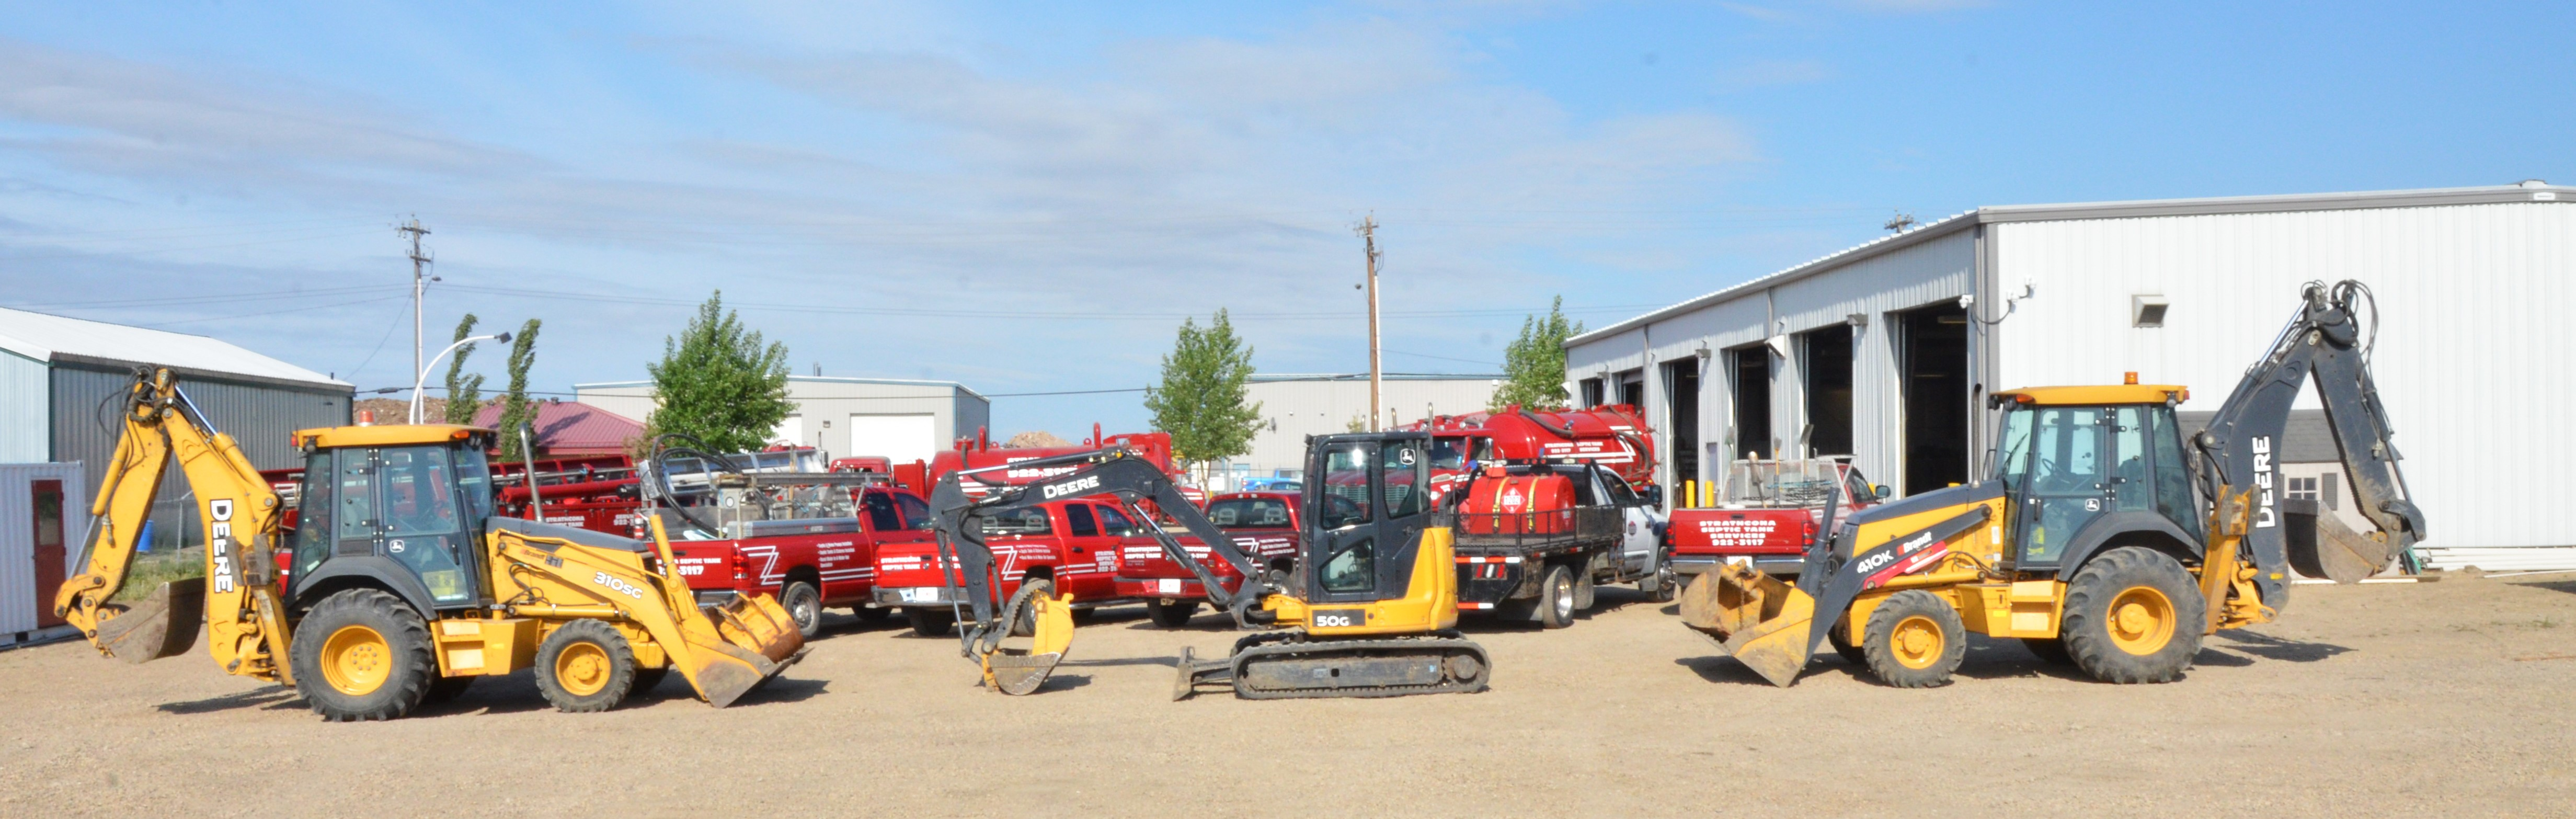 Excavating Construction Equipment for Septic and Cistern Installation